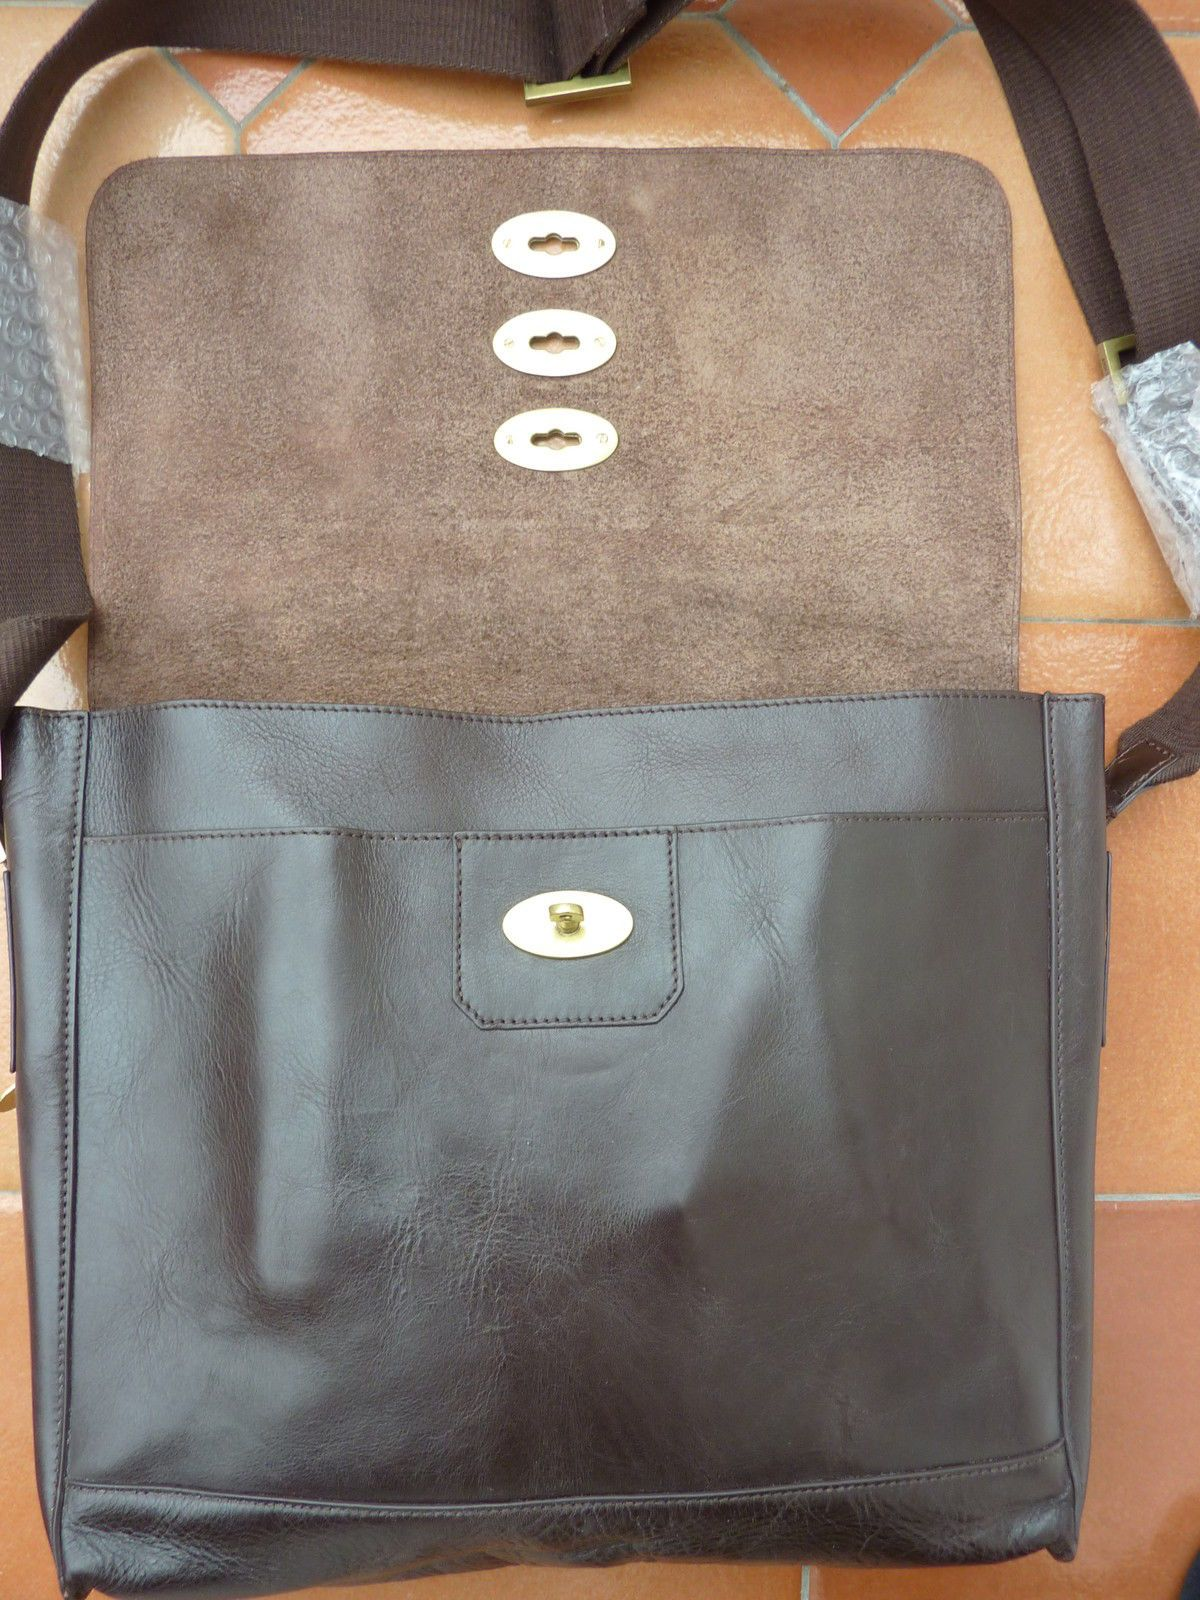 2a3eac899d Mulberry - Brynmore Messenger Bag - £795 - Brown Leather - triple lock in  Clothes